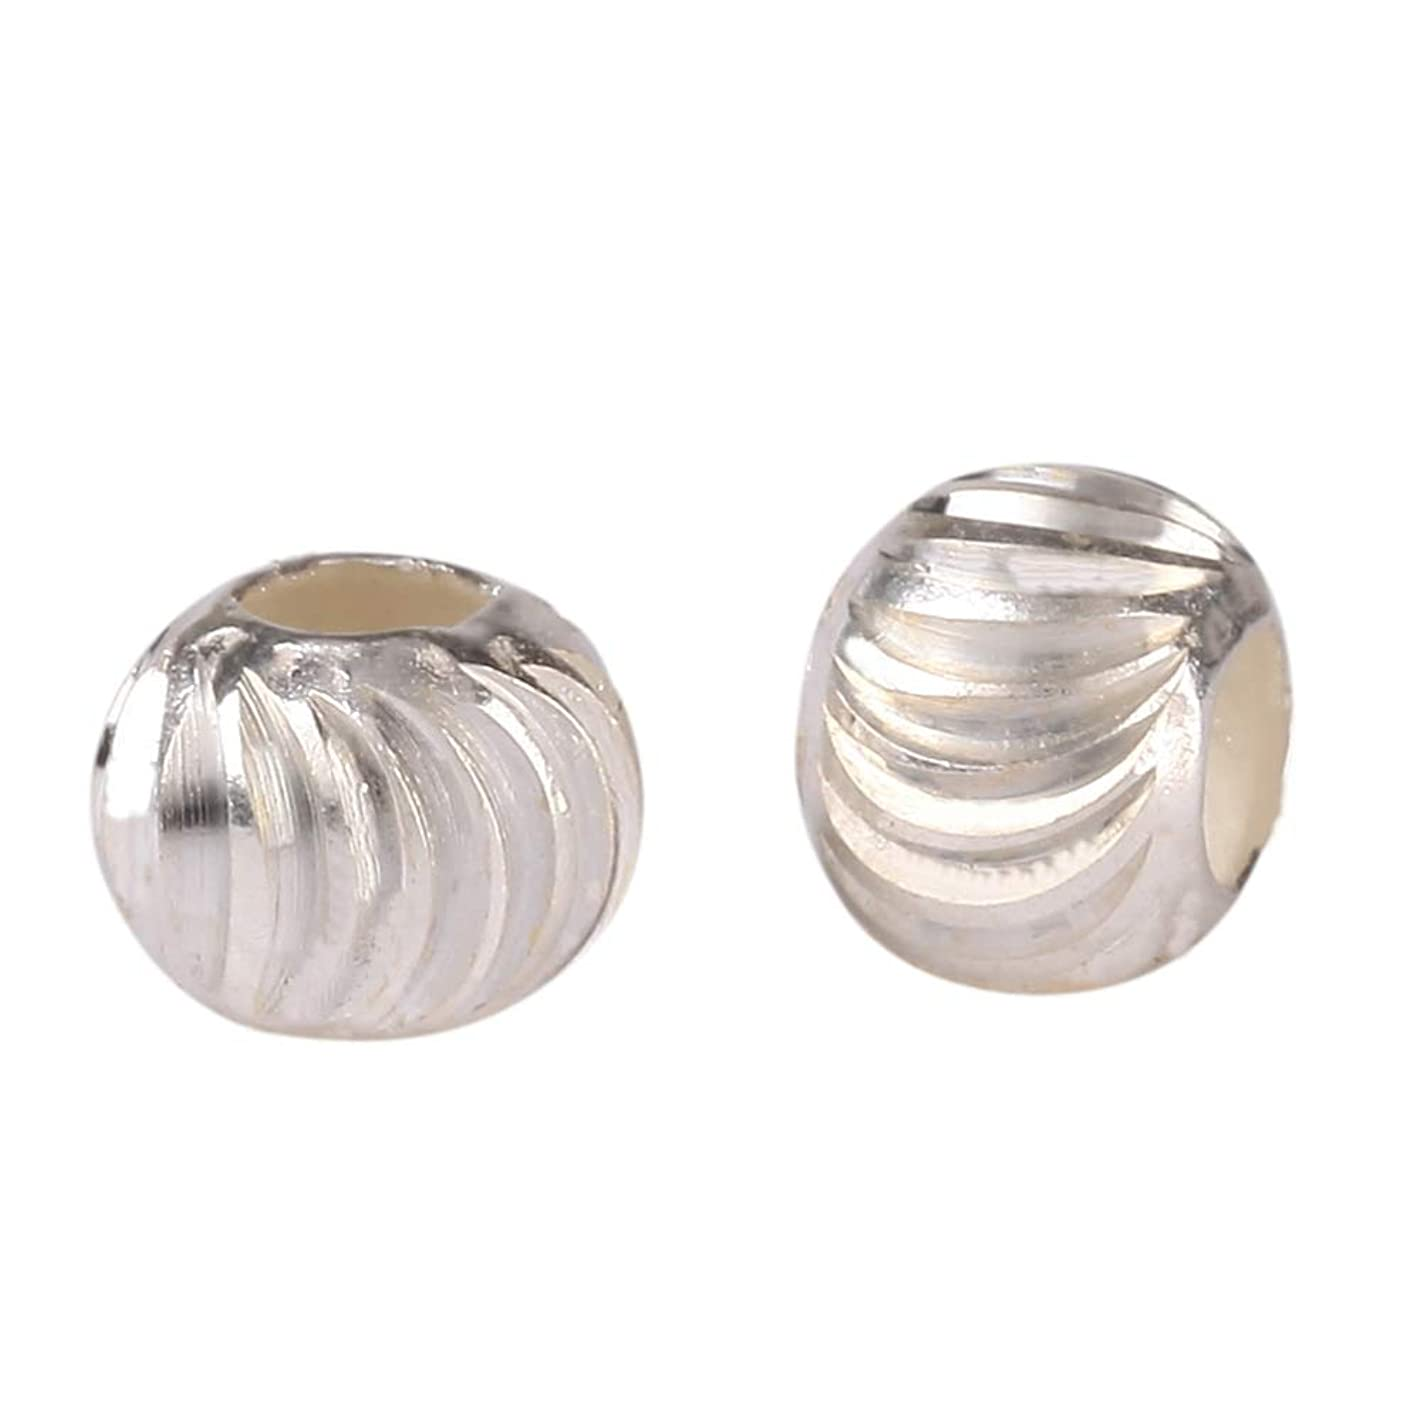 30pcs x 6mm Sterling Silver Infinite Pattern Round Spacer beads (Large Hole ~2.6mm) for Jewelry Craft Making Findings SS63